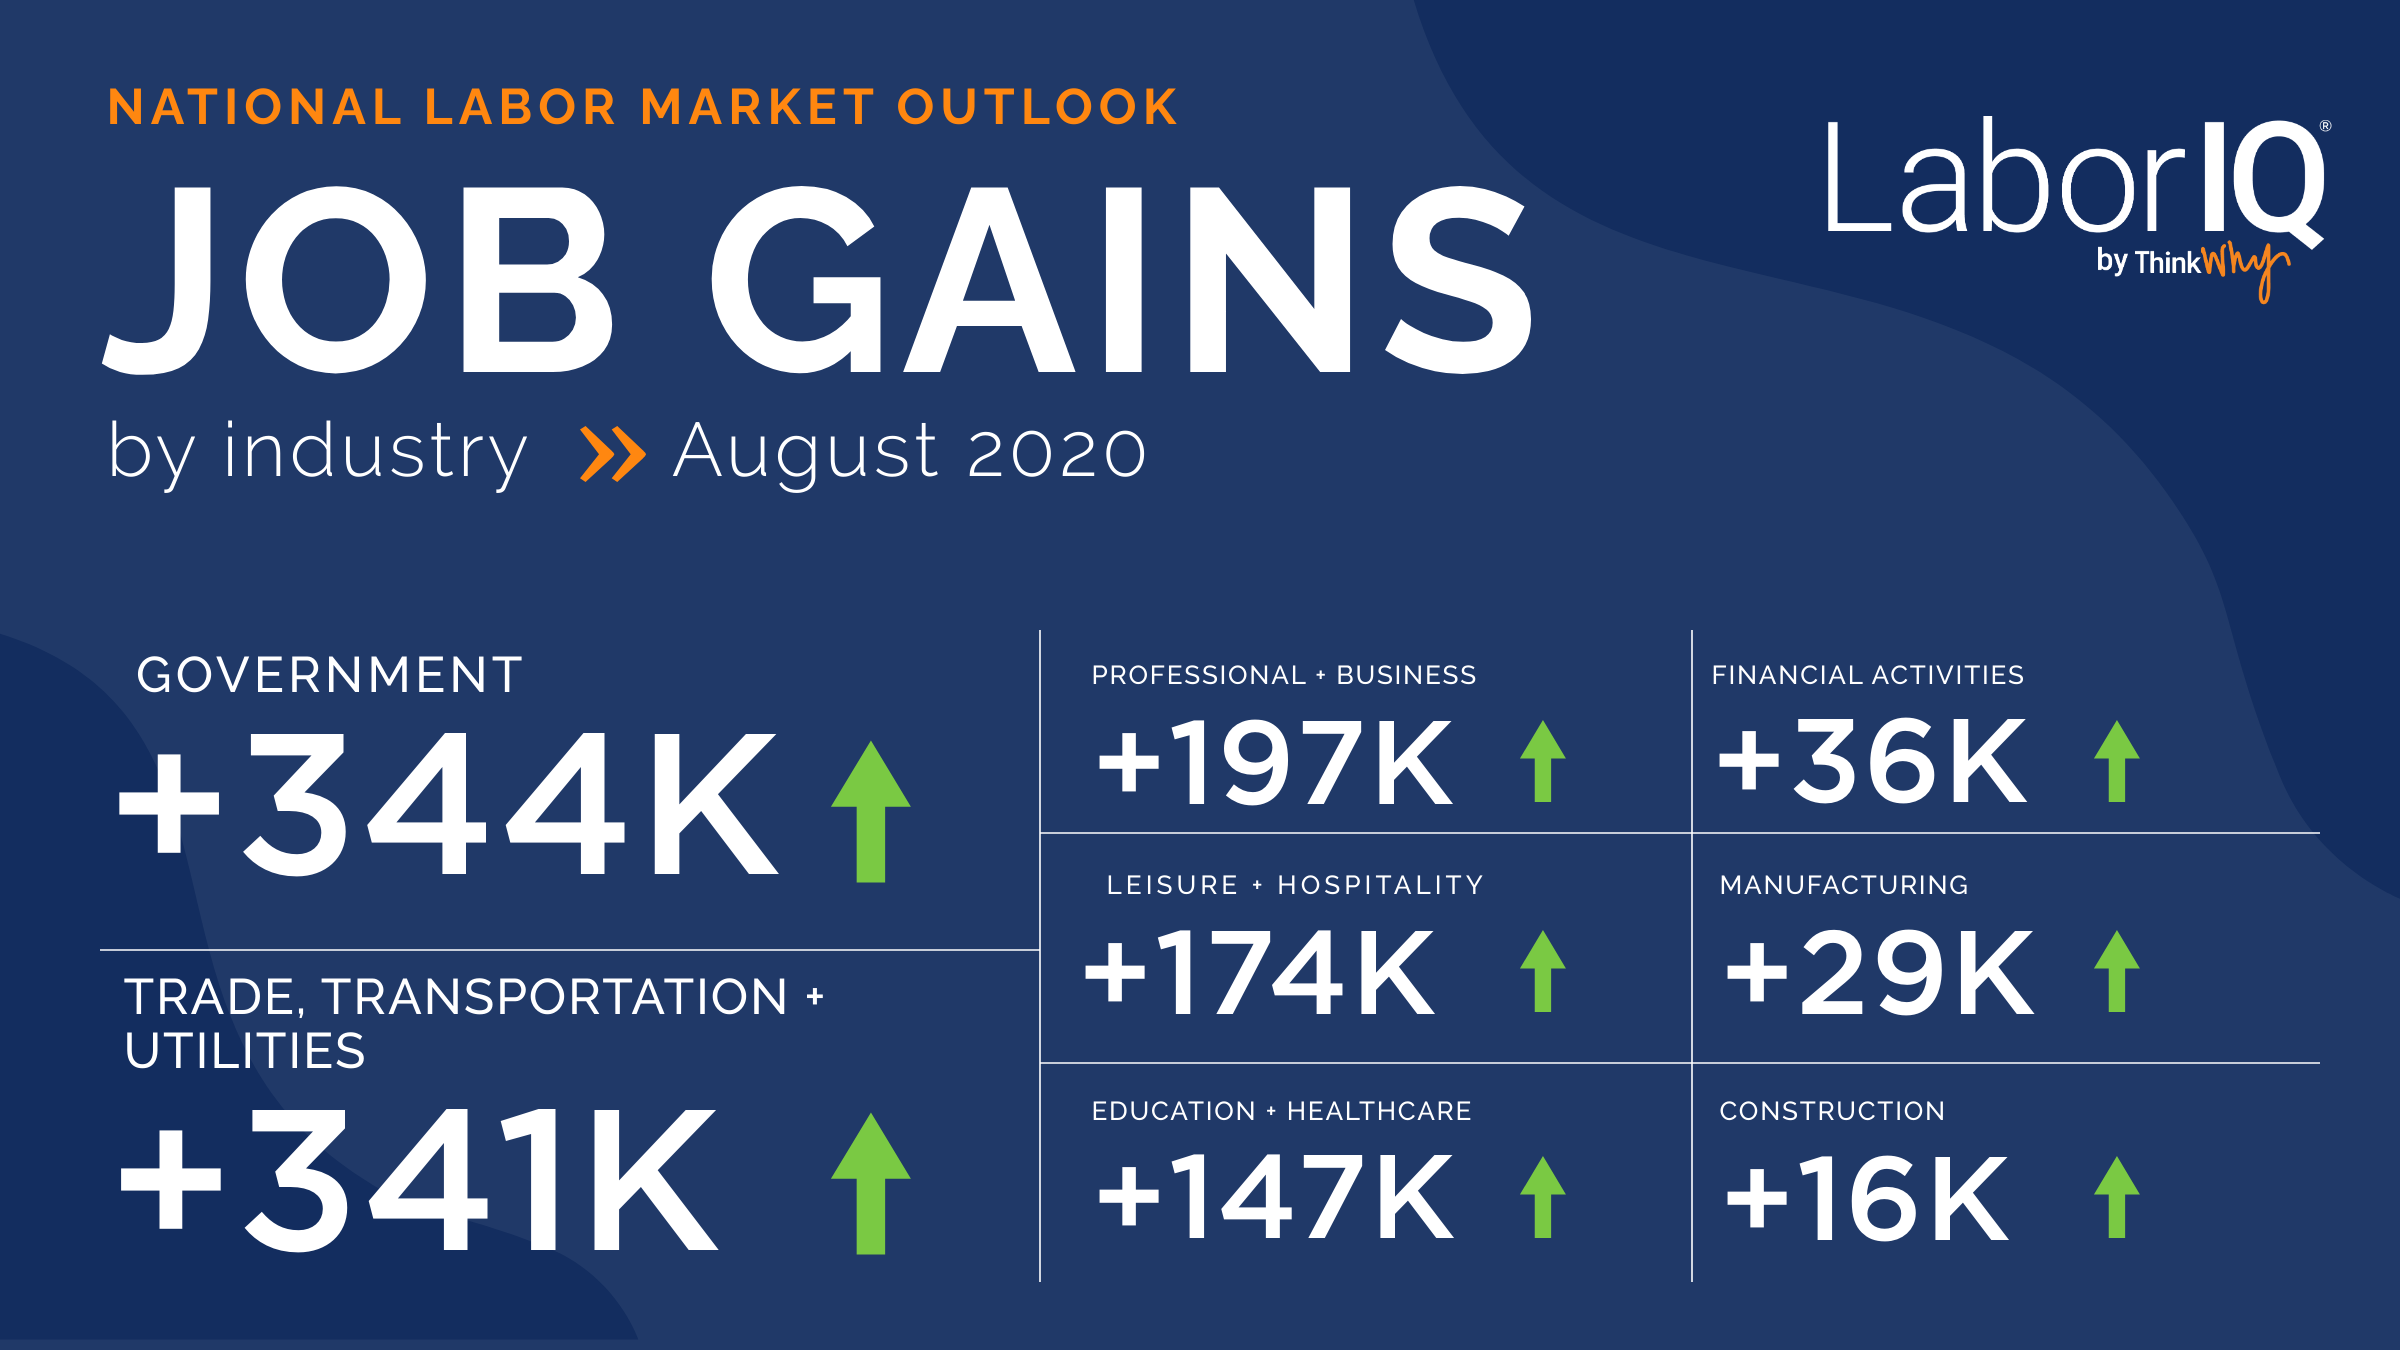 job gains infographic